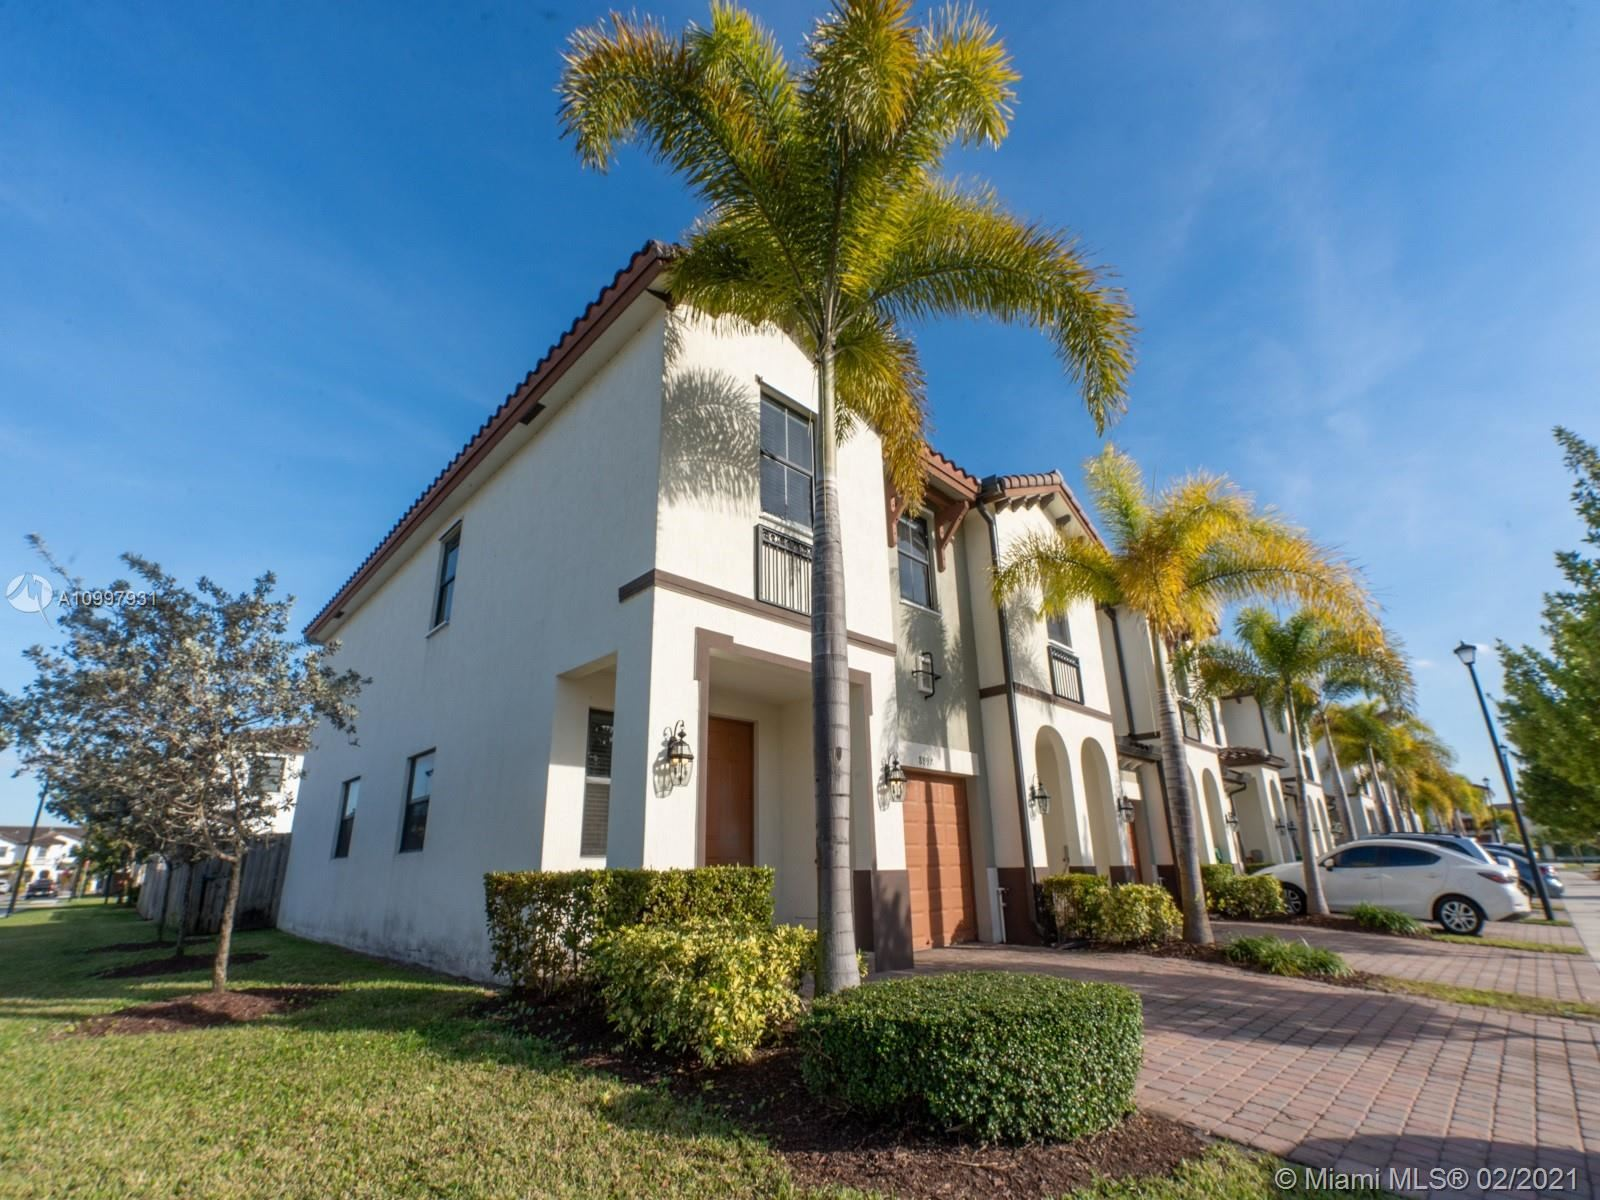 8897 NW 103rd Ave, Doral, FL 33178 - #: A10997931